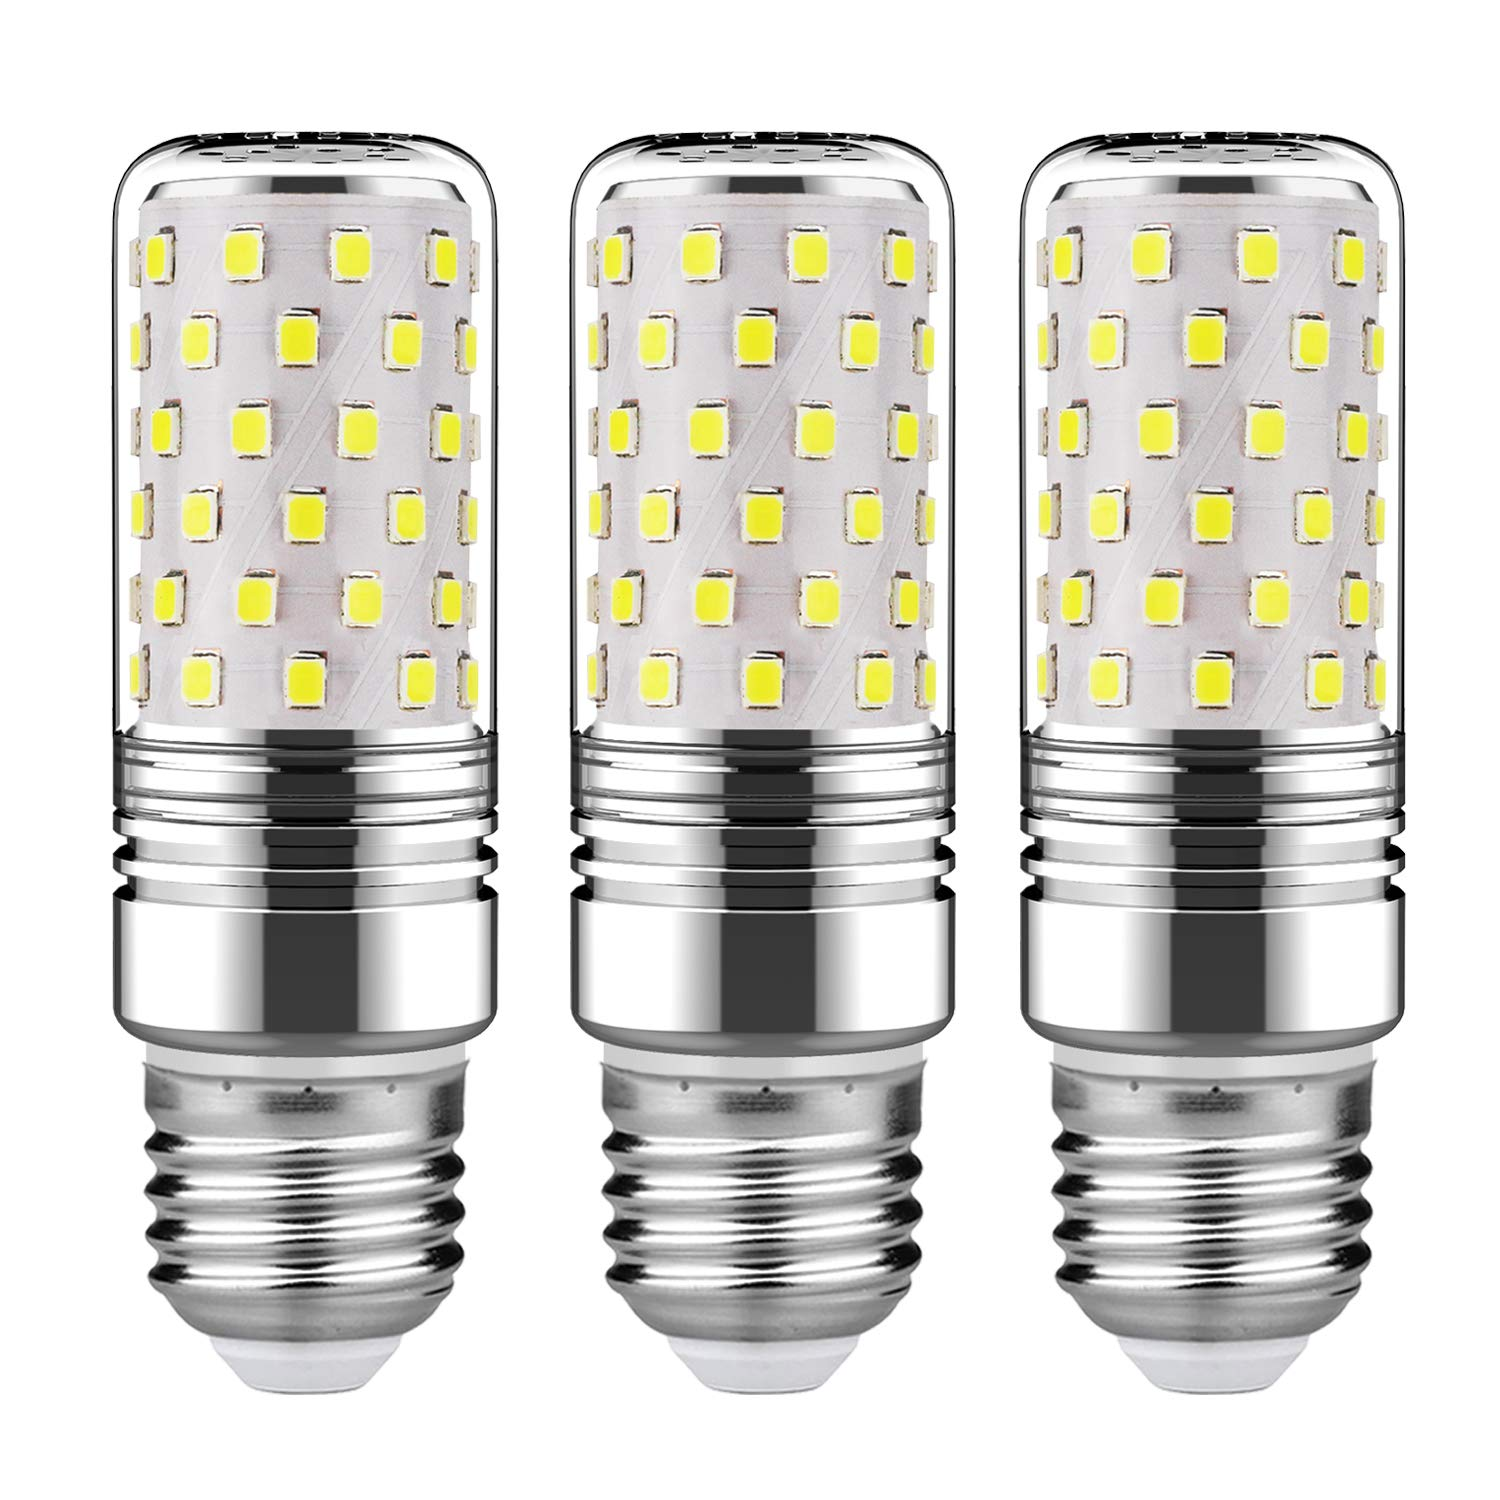 GEZEE 15W LED Cylindrical Bulb, E26 LED Candelabra Light Bulbs 120 Watt Equivalent,1500lm, Daylight White 6000K LED Chandelier Bulbs, Non-Dimmable LED Lamp(3-Pack)